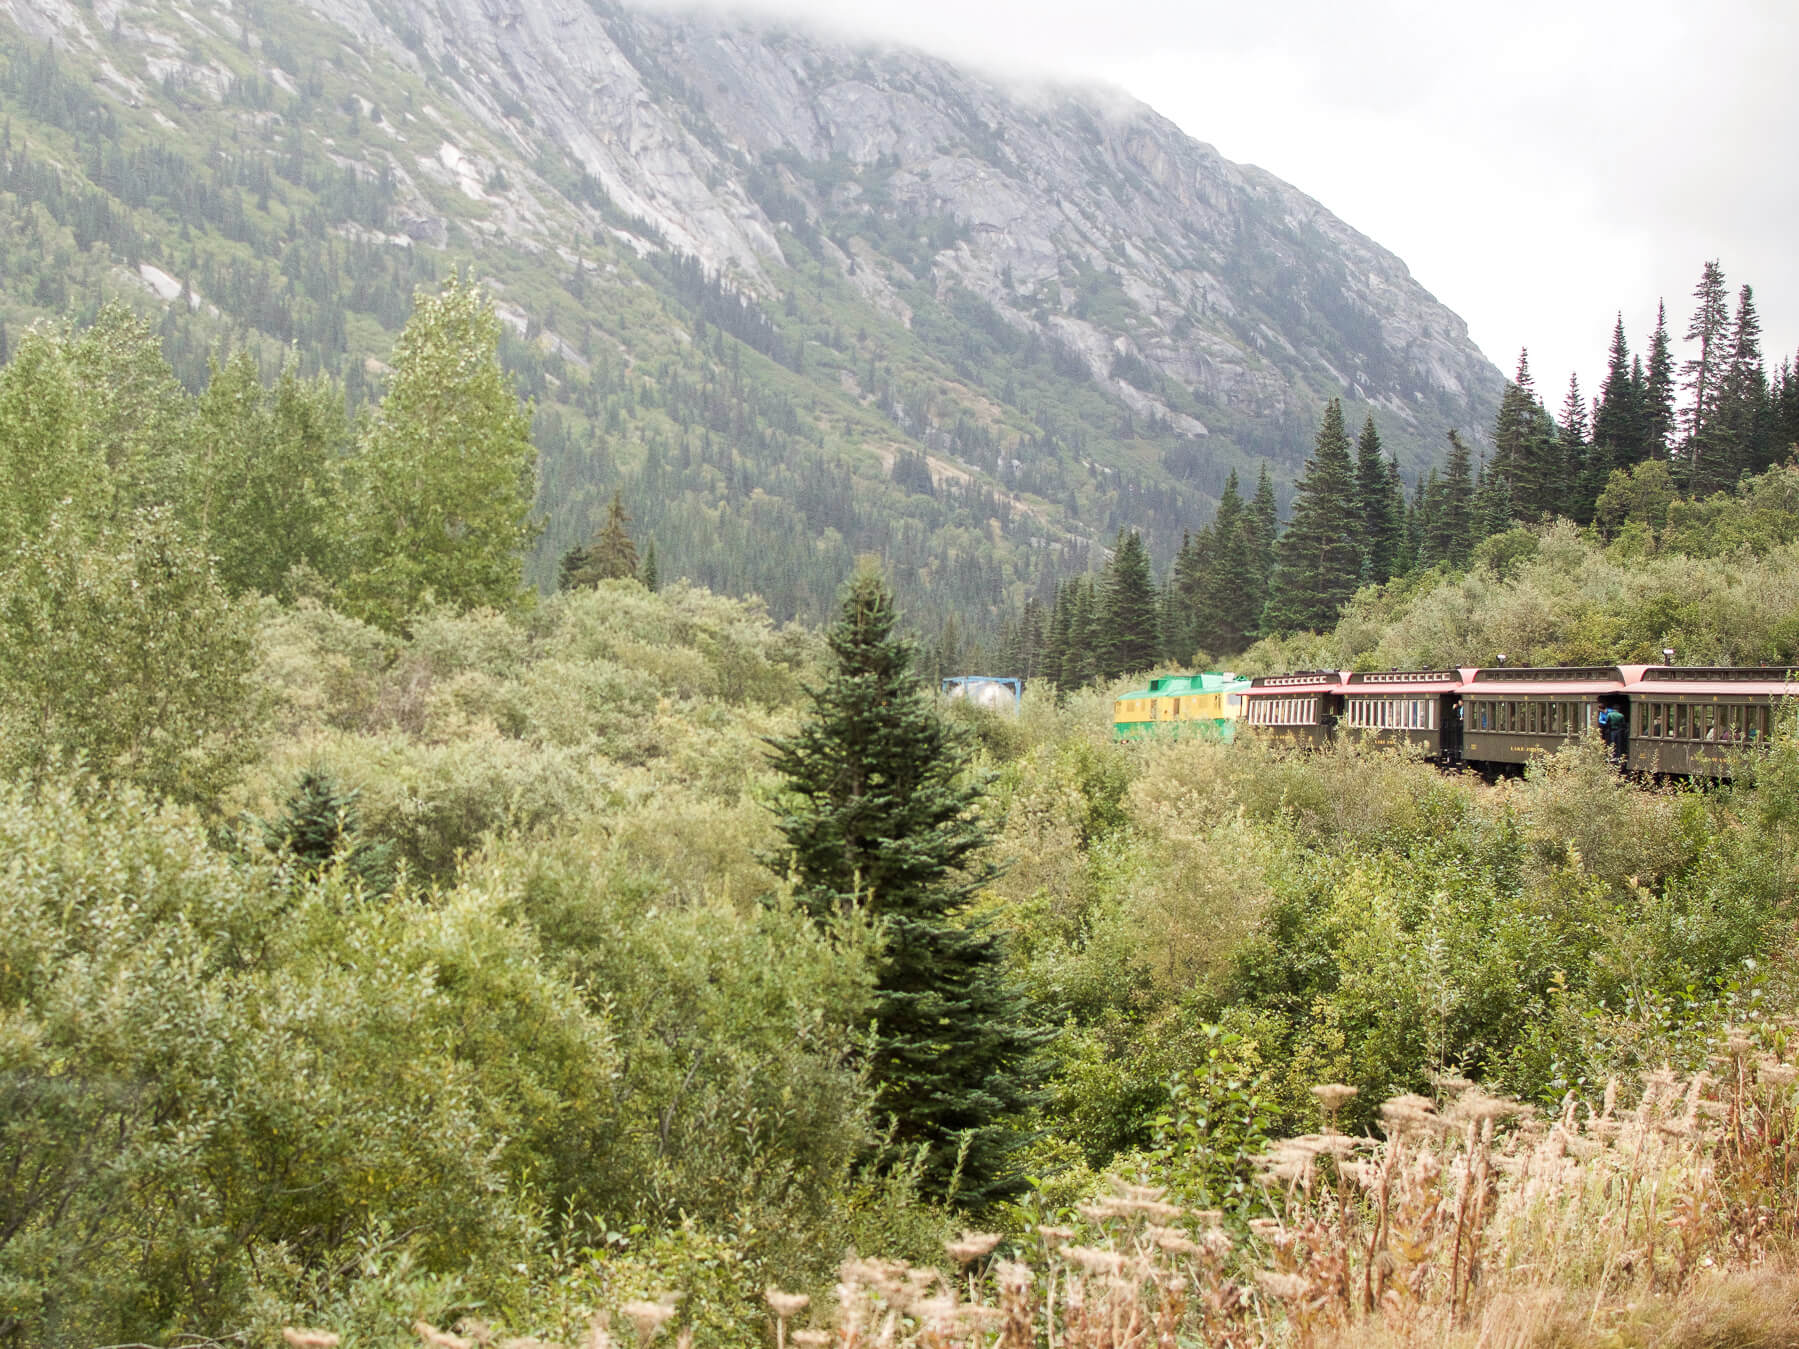 Old train chugging through the Alaskan Valley